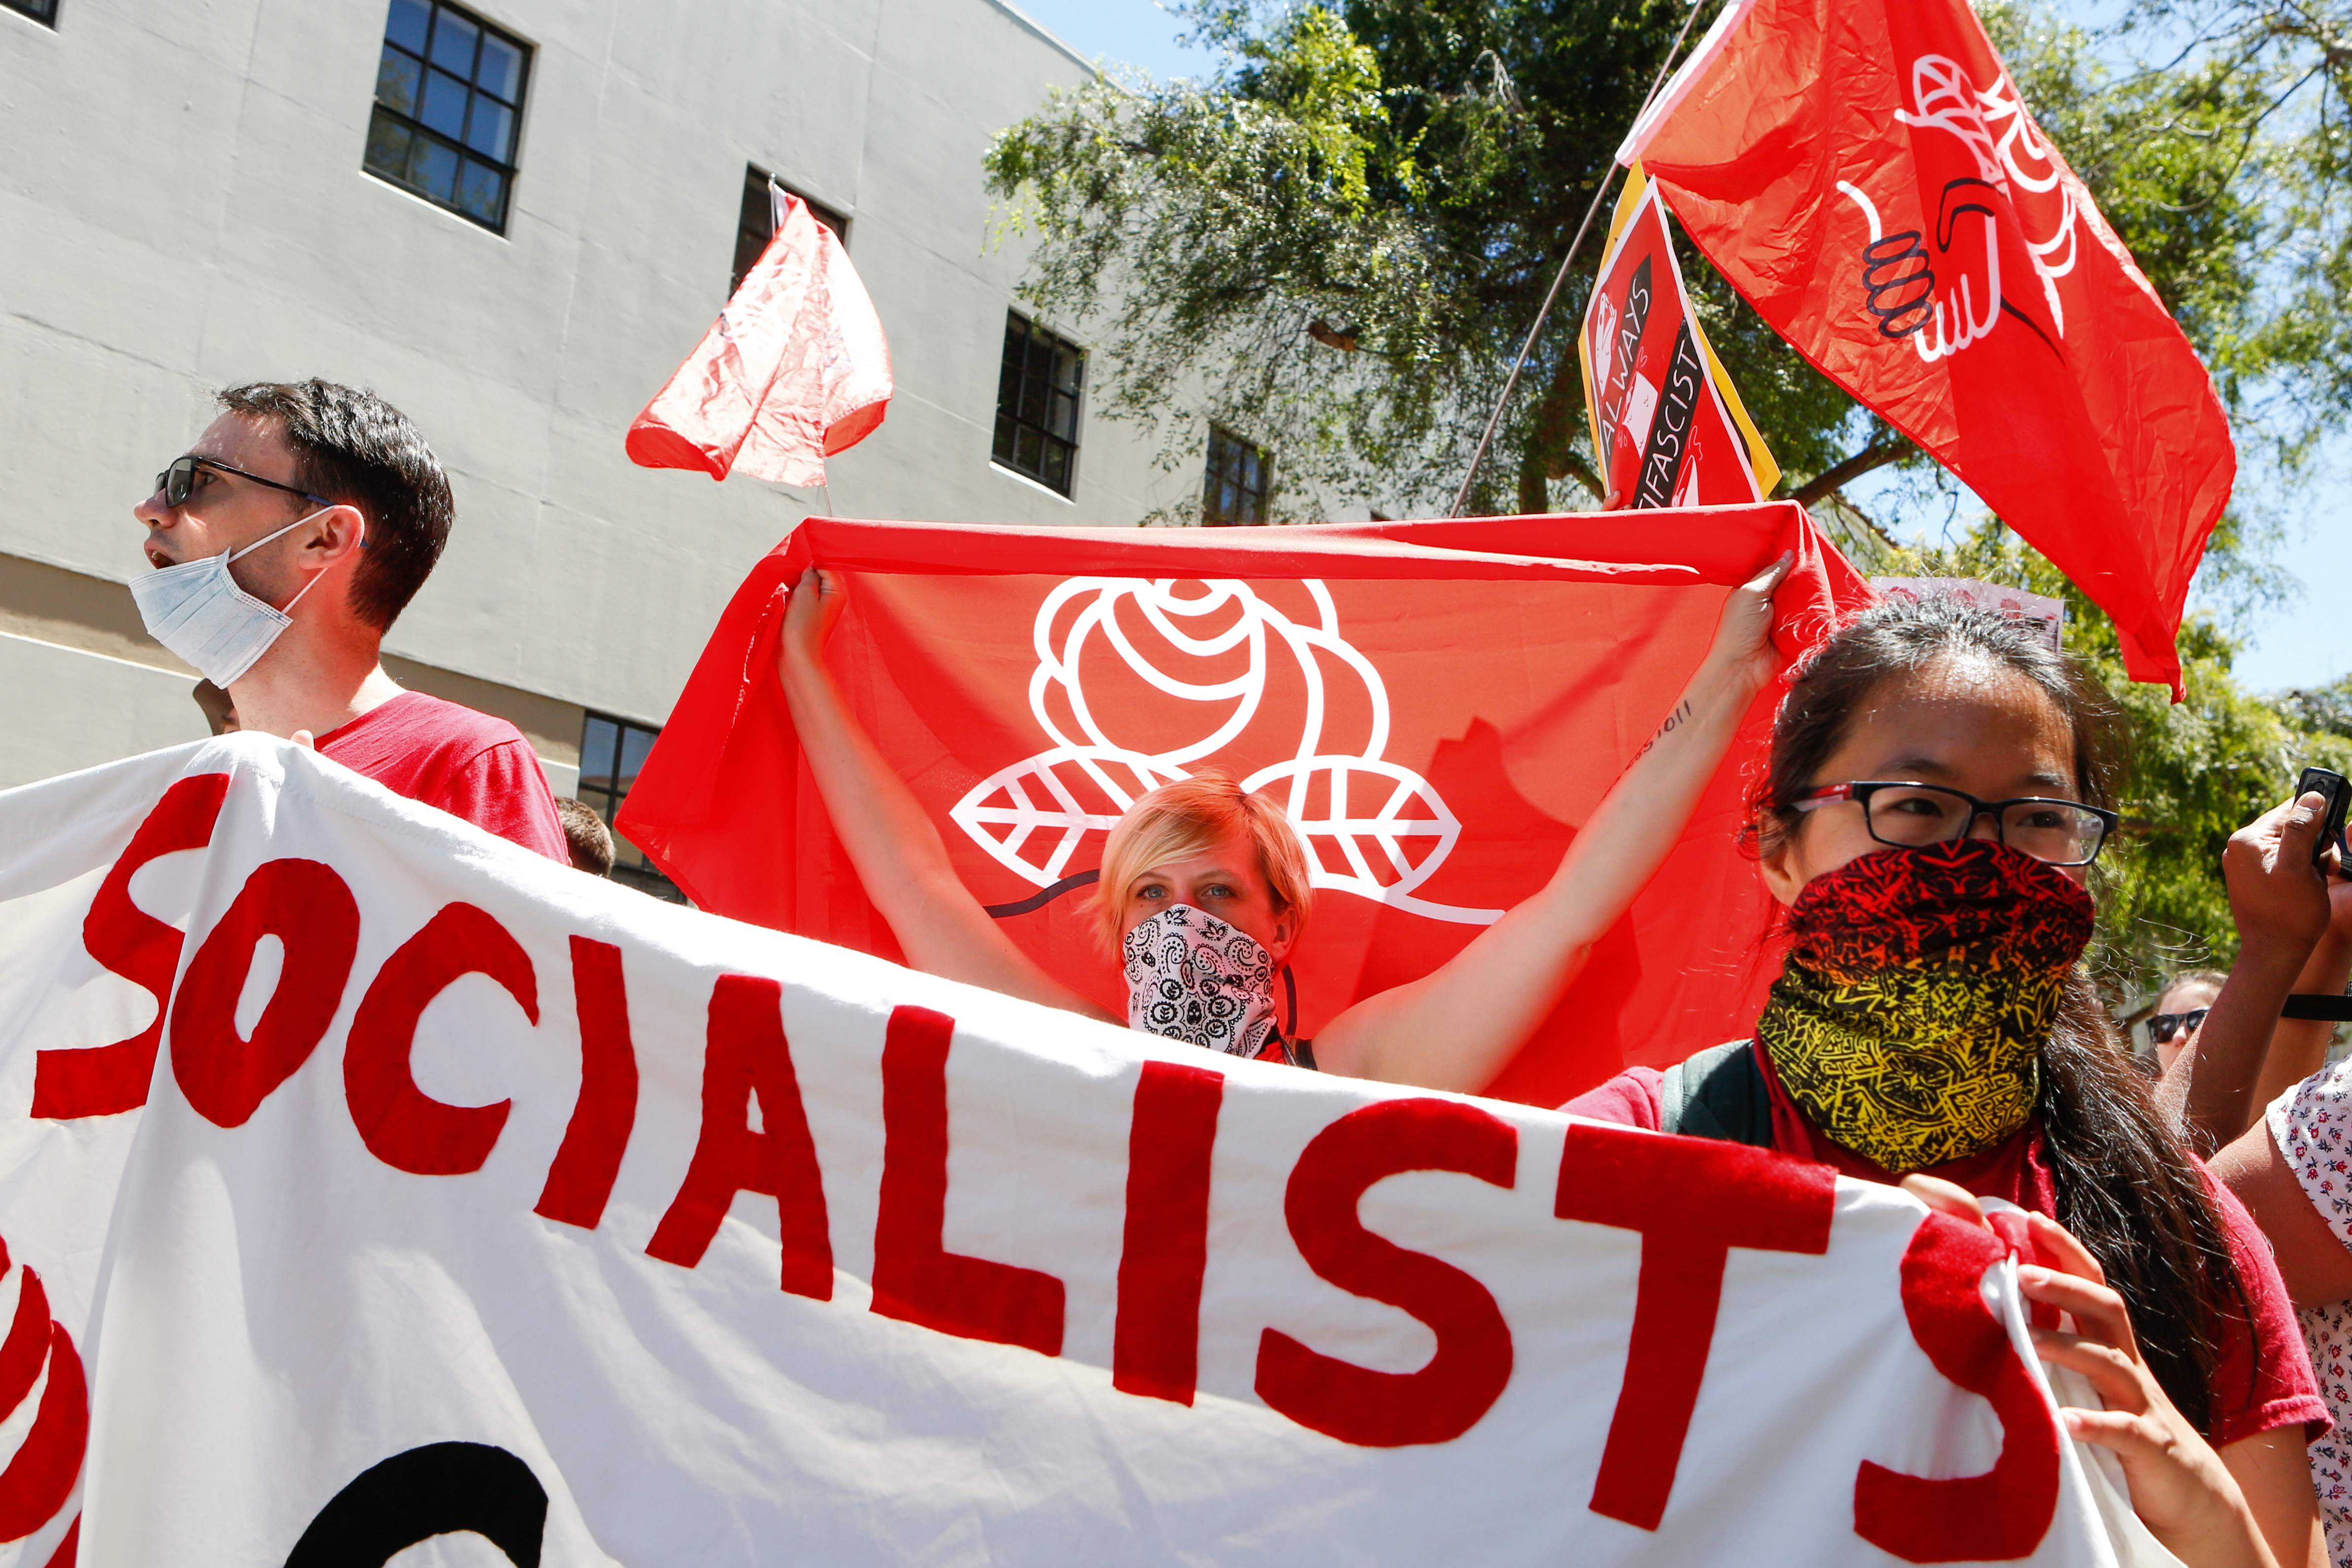 Democrats have a more positive view of socialism than capitalism, poll finds